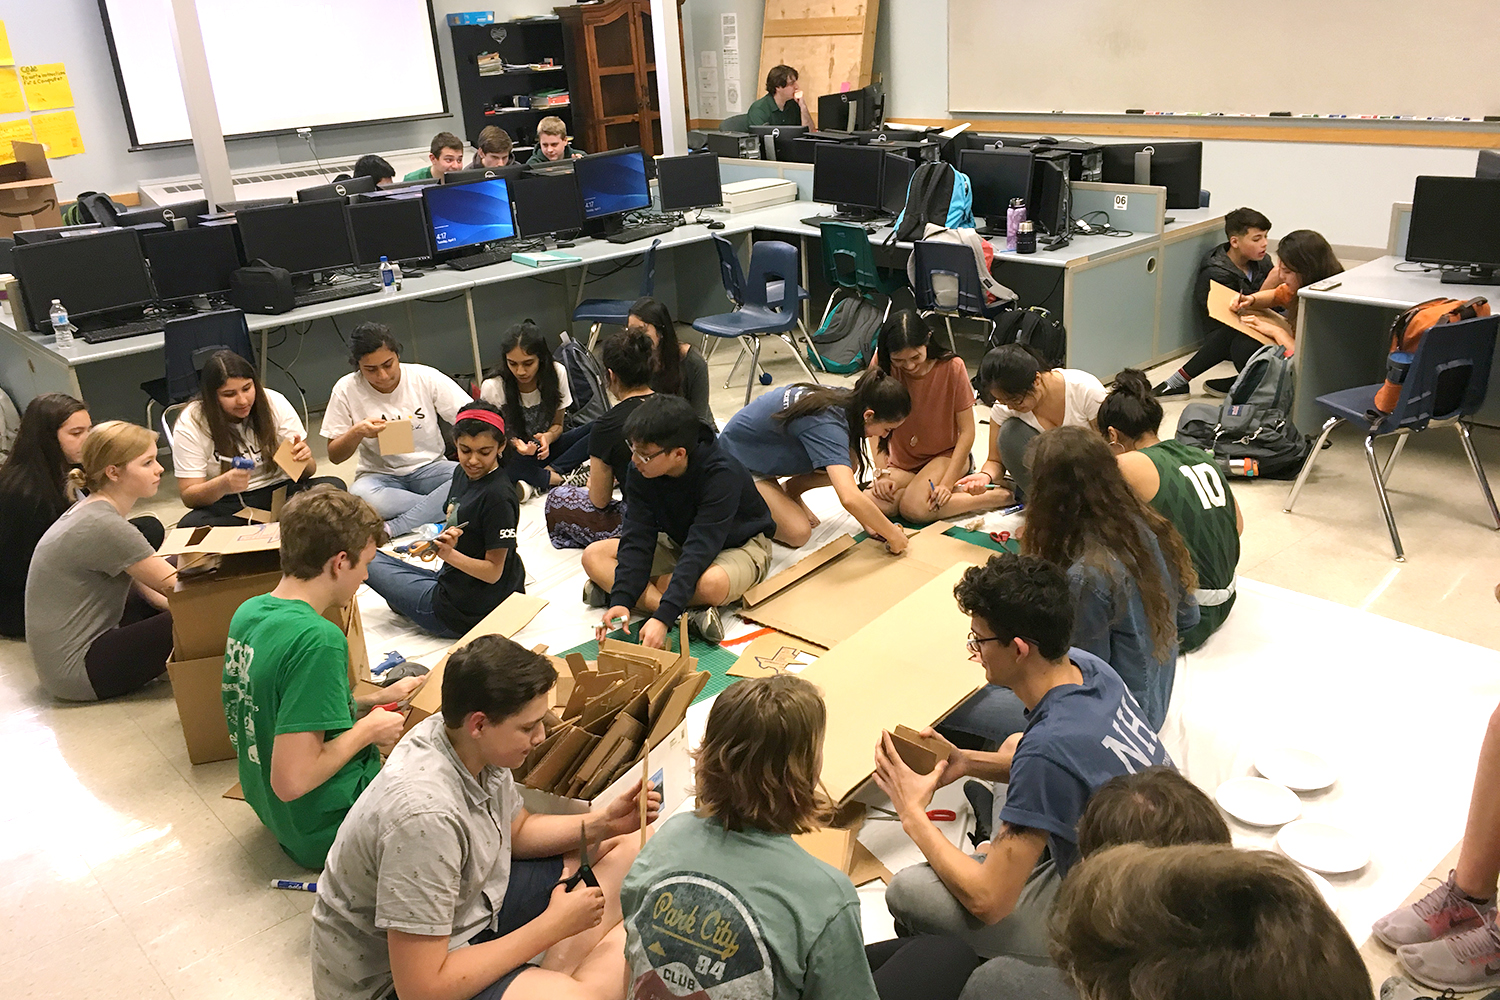 By cutting and gluing cardboard, and painting them green, students help make battery trash cans on April 3, 2018 in EIT.